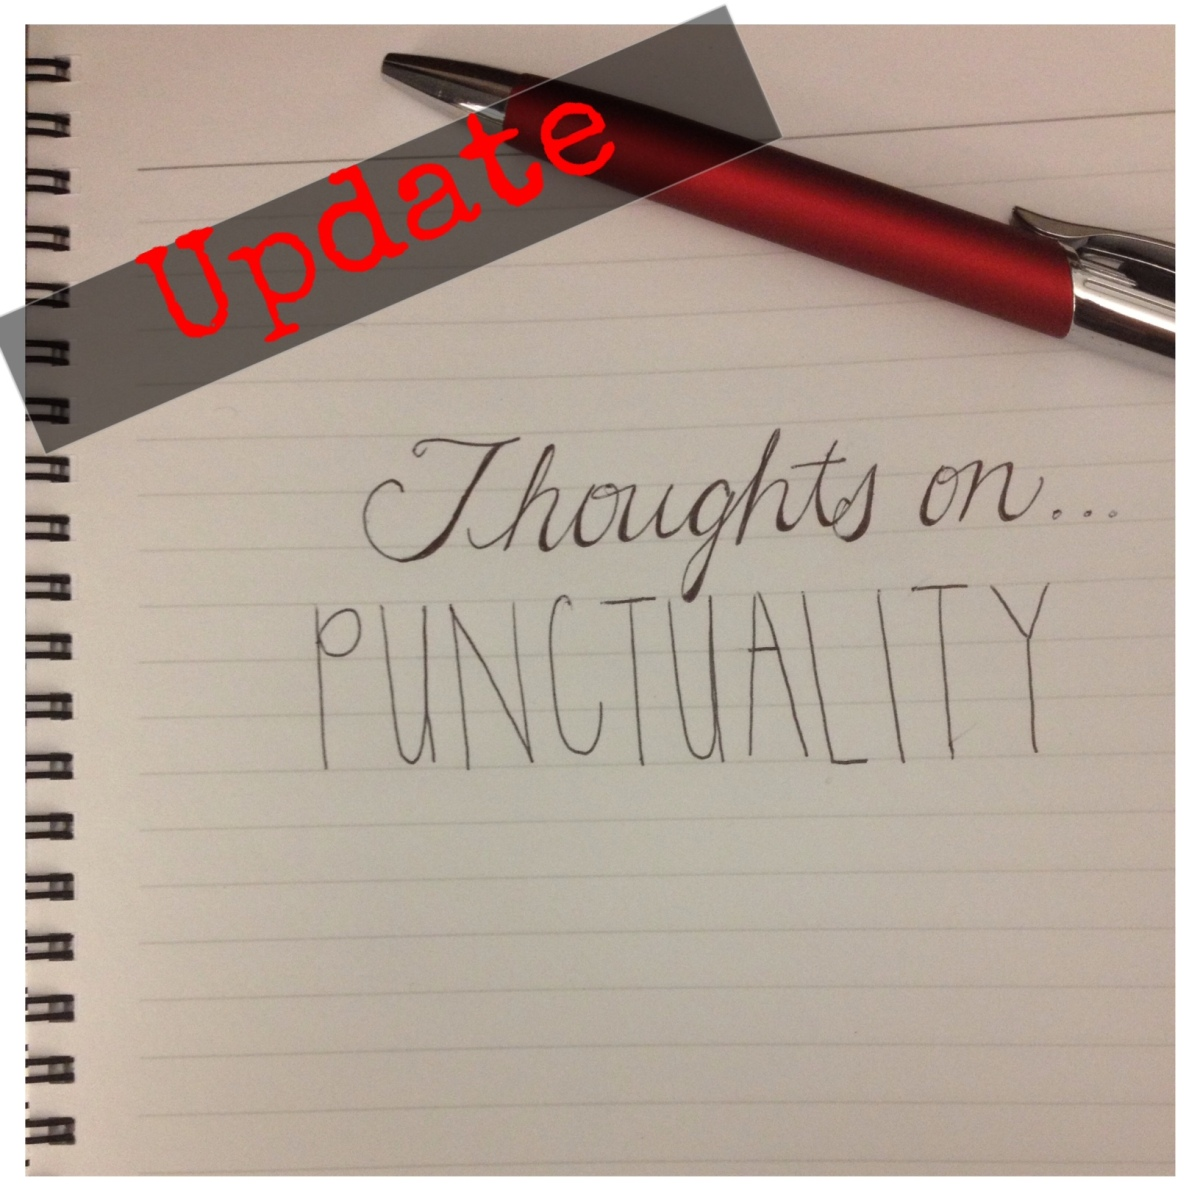 Thoughts On...Punctuality (My Response)